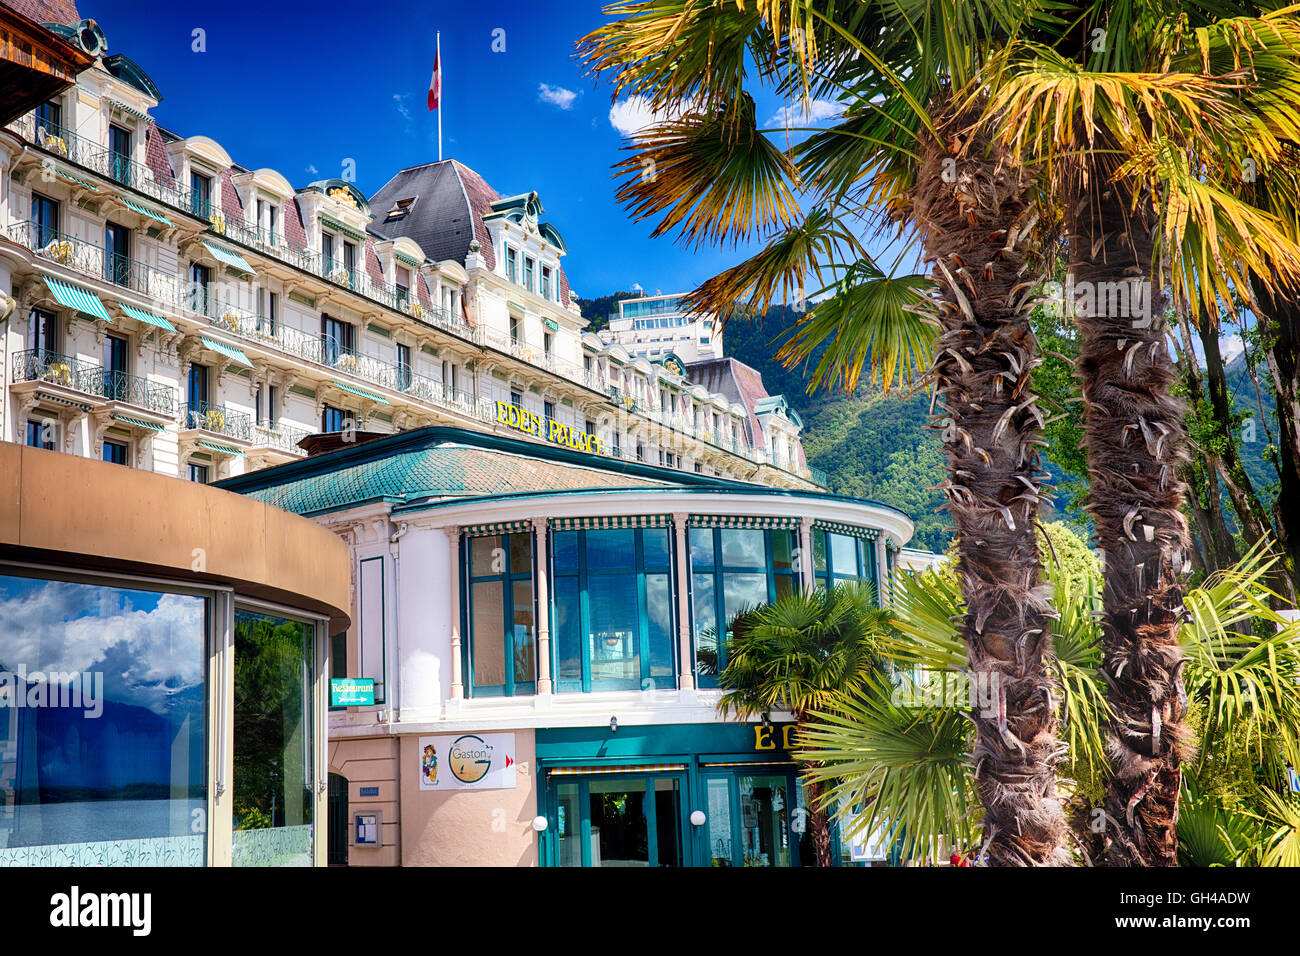 Low Angle View of a Classic Hotel with Palm Trees, Eden Palace, Montreux, Vaud Canton, Switzerland - Stock Image